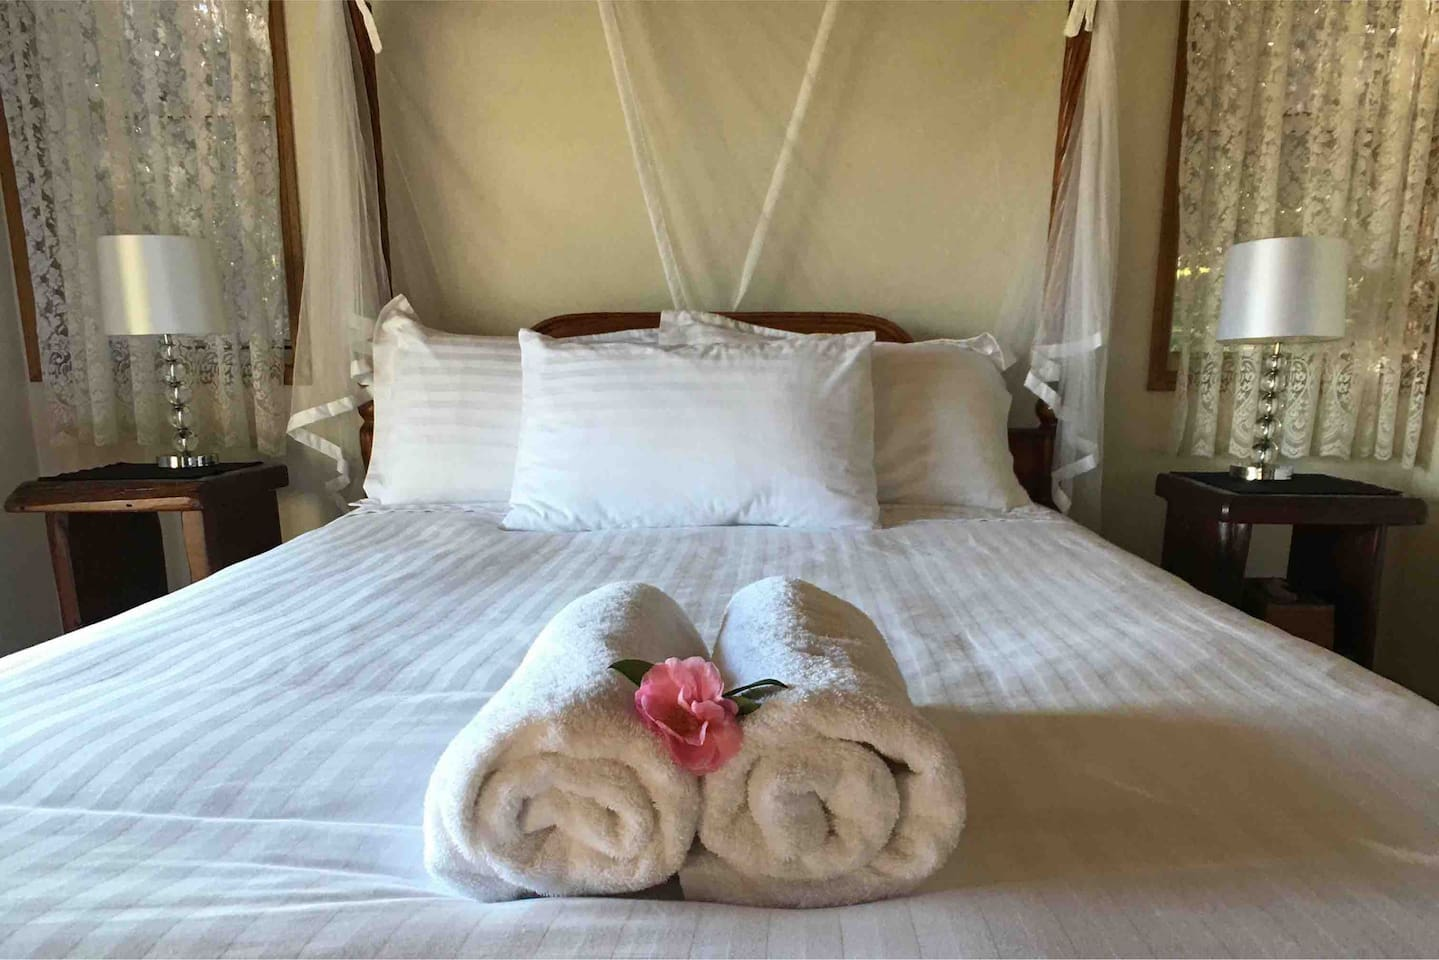 Cottage 2 - all cottages have luxurious four poster beds. We are in Mapleton, Sunshine Coast Hinterland, part of the Blackall Range and close to the towns of Montville, Maleny, Eumundi, Yandina, Kenilworth,  Noosa and the Glass House Mountains.